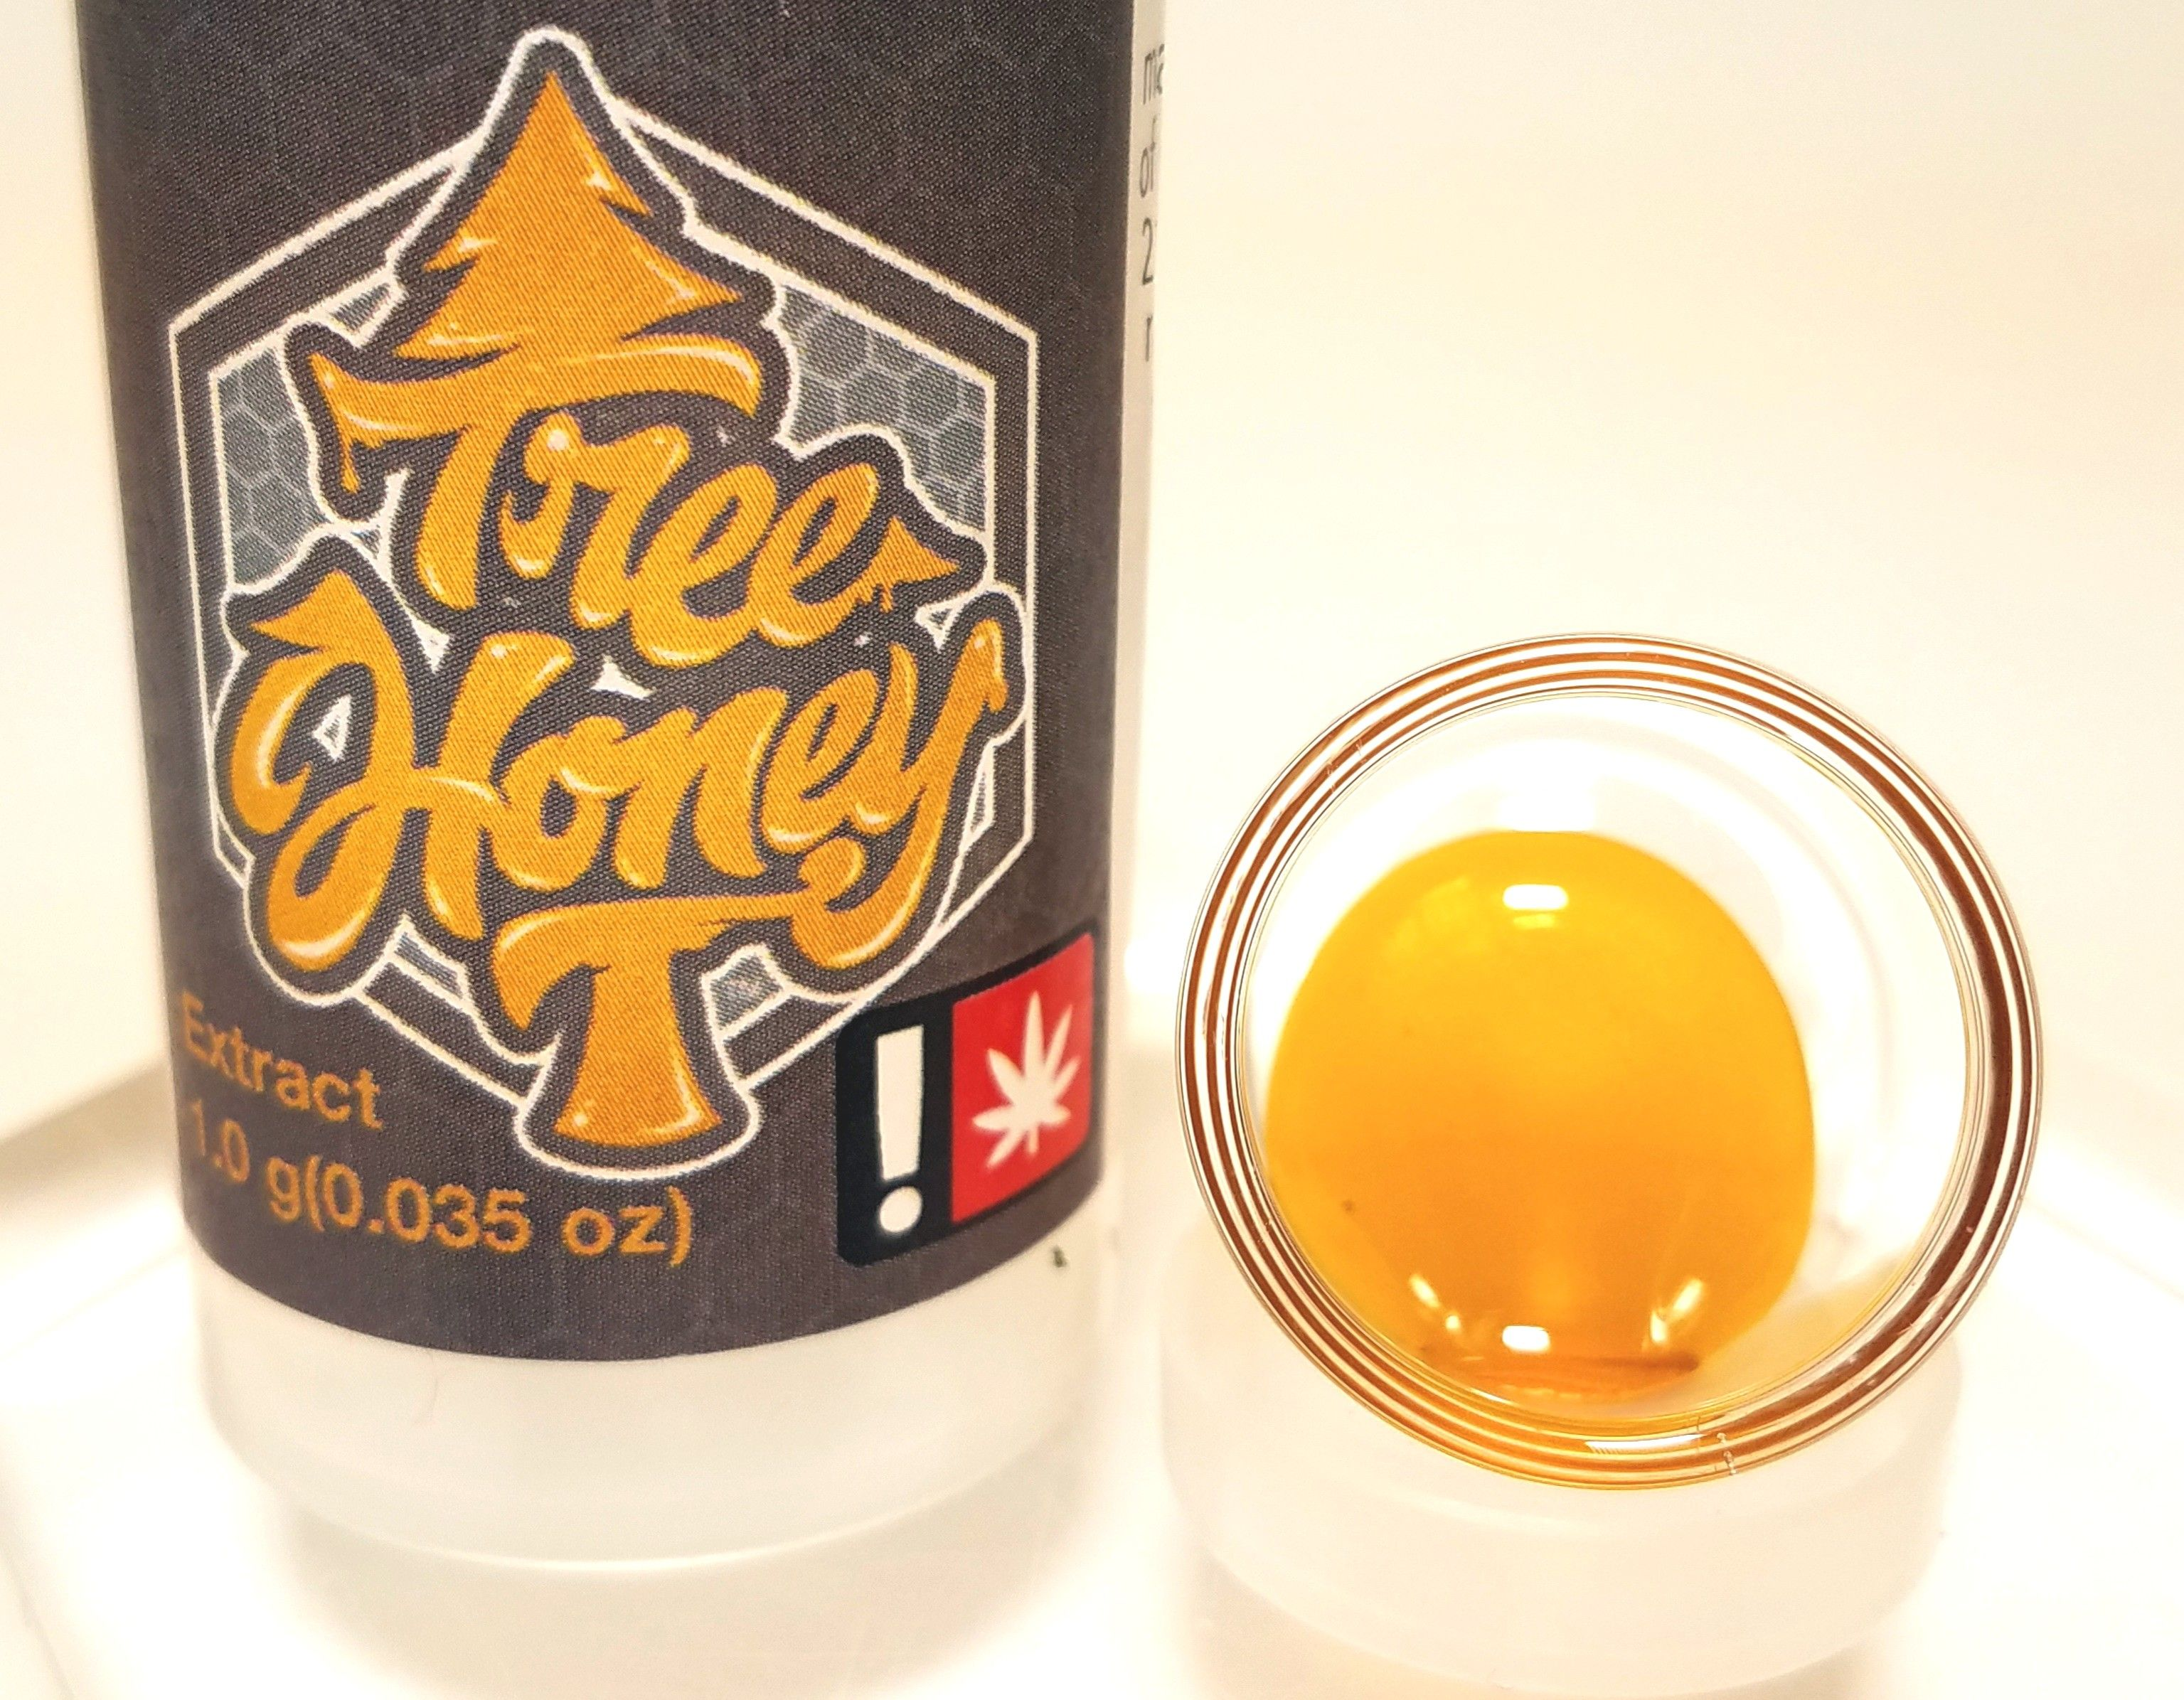 Tree Honey - Choco Giest, Hybrid, Pull n Snap